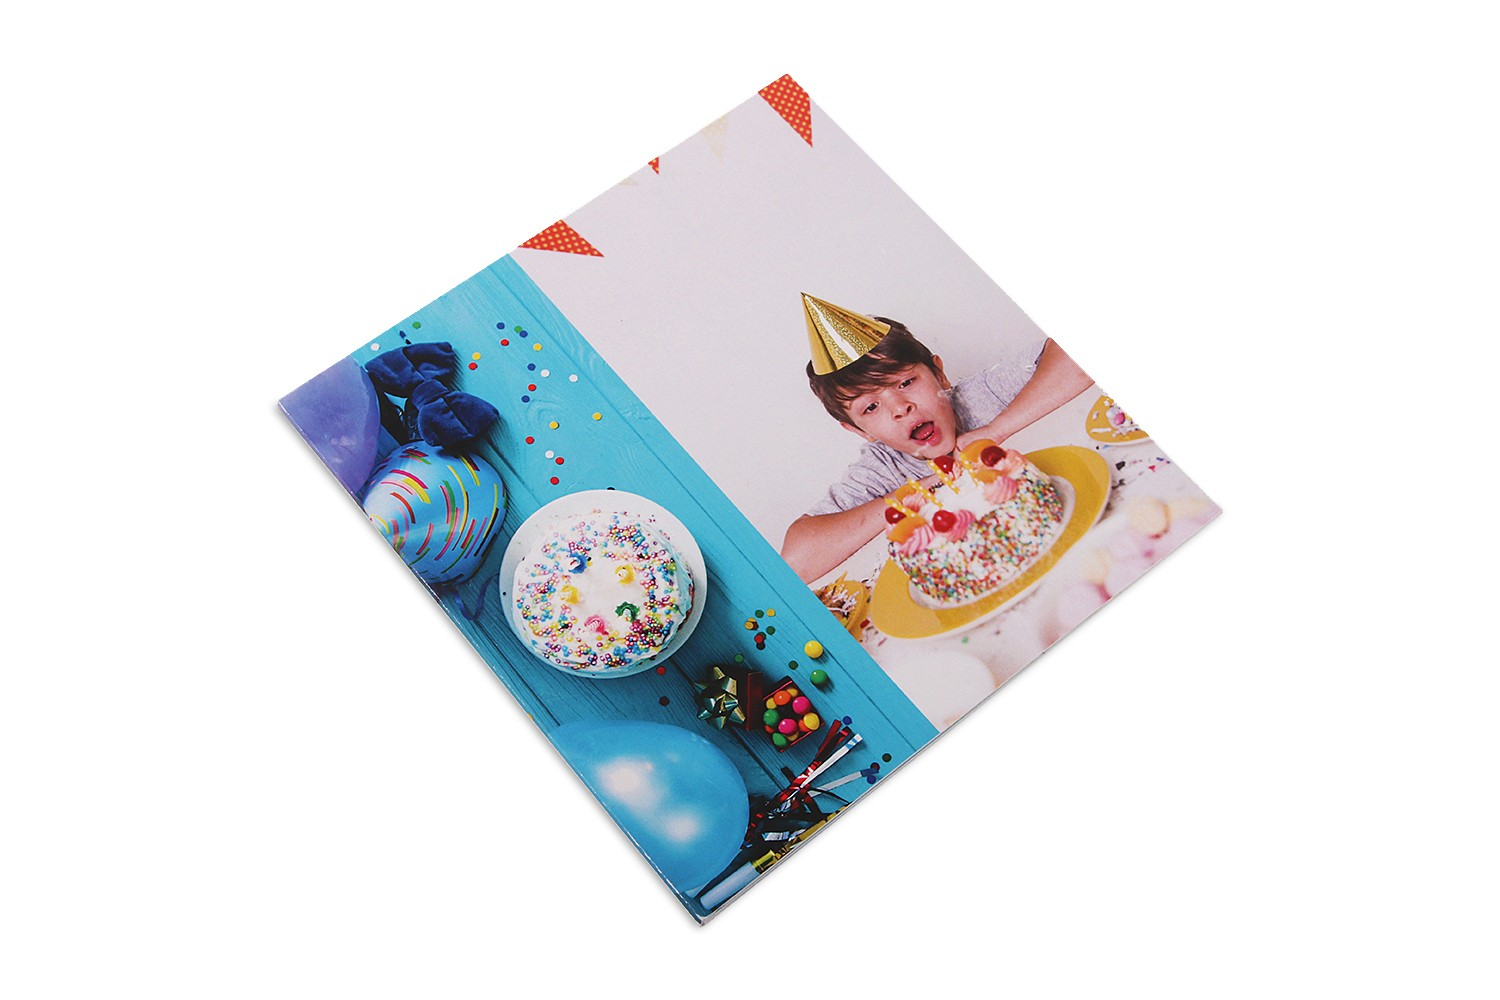 Joys in Life 6X6 Photo Album